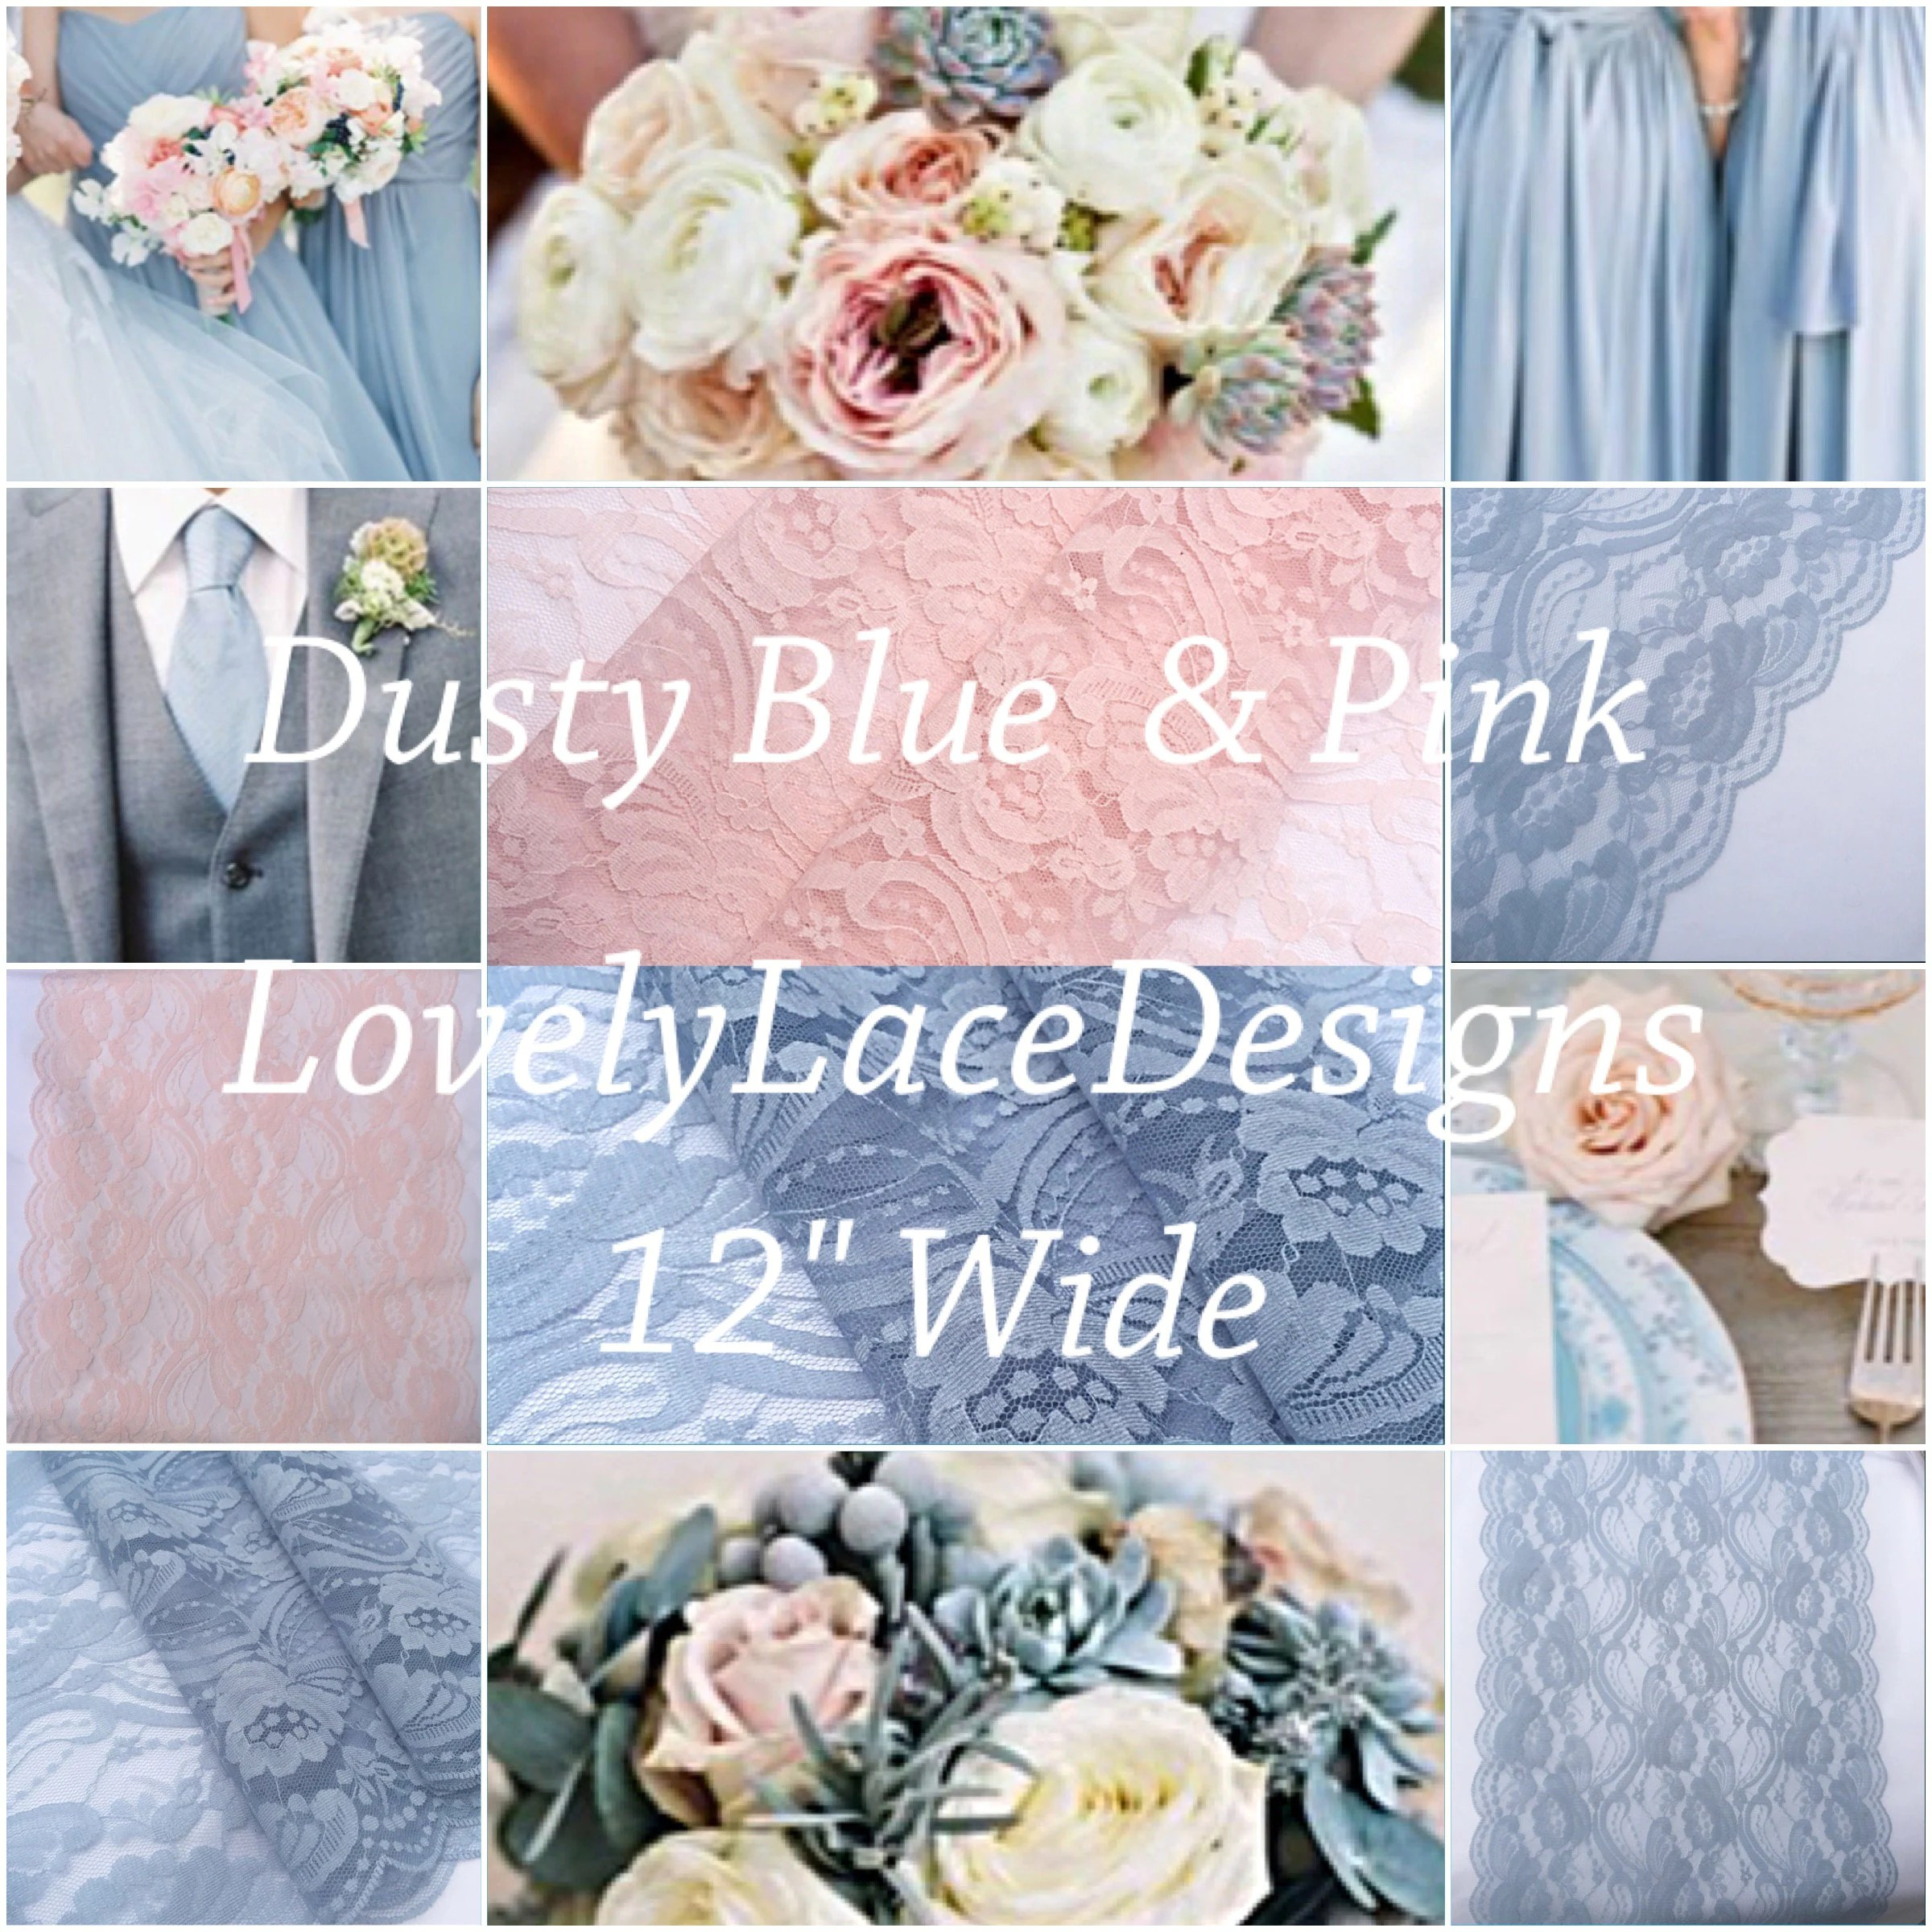 Dusty BLue/Blush Pink/ Lace Table Runner/12ft